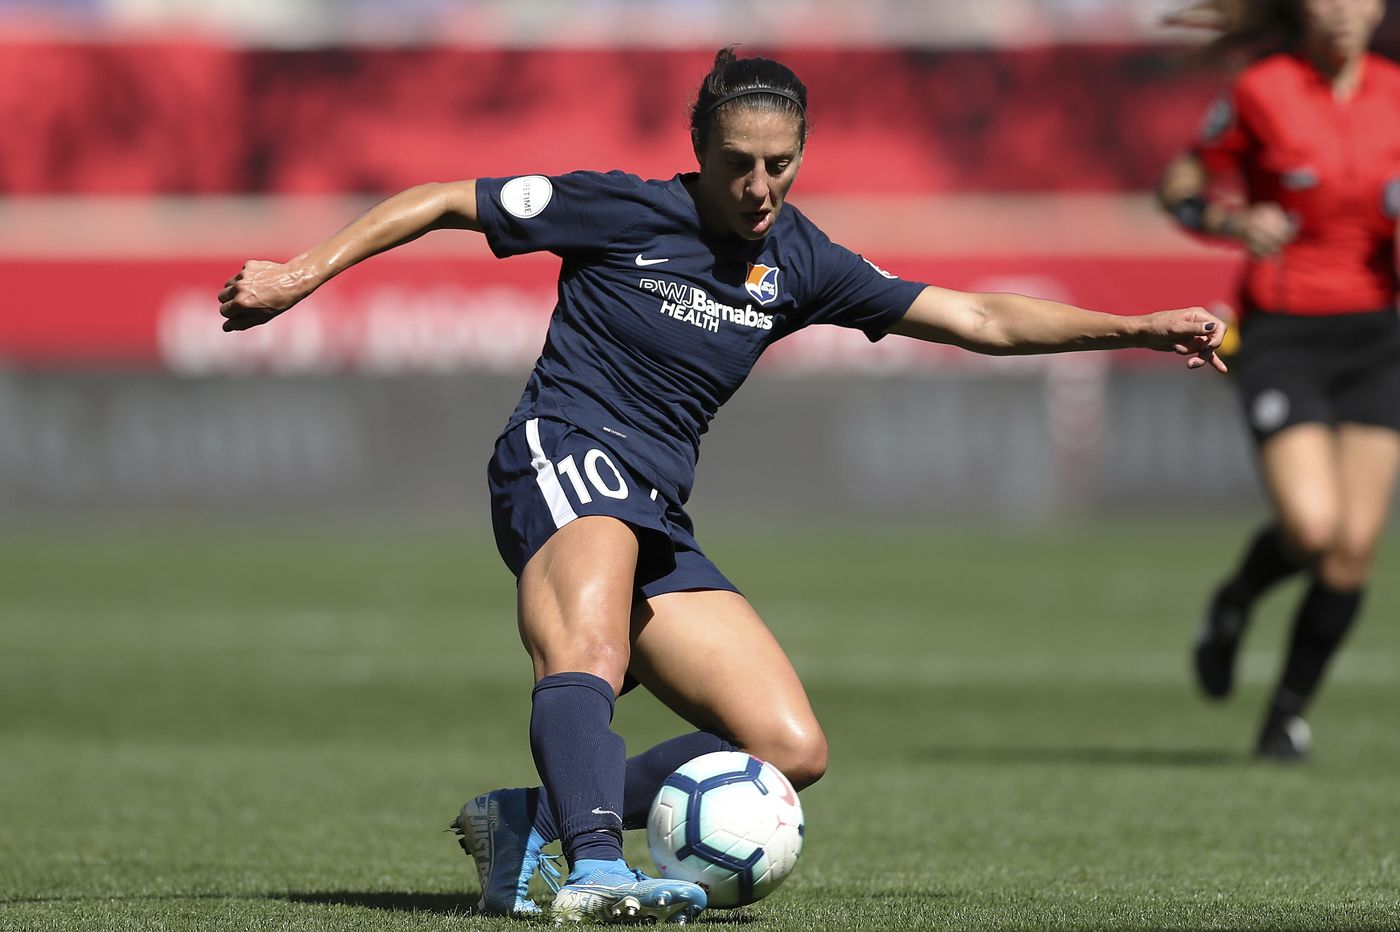 Carli Lloyd will miss NWSL Challenge Cup due to knee injury